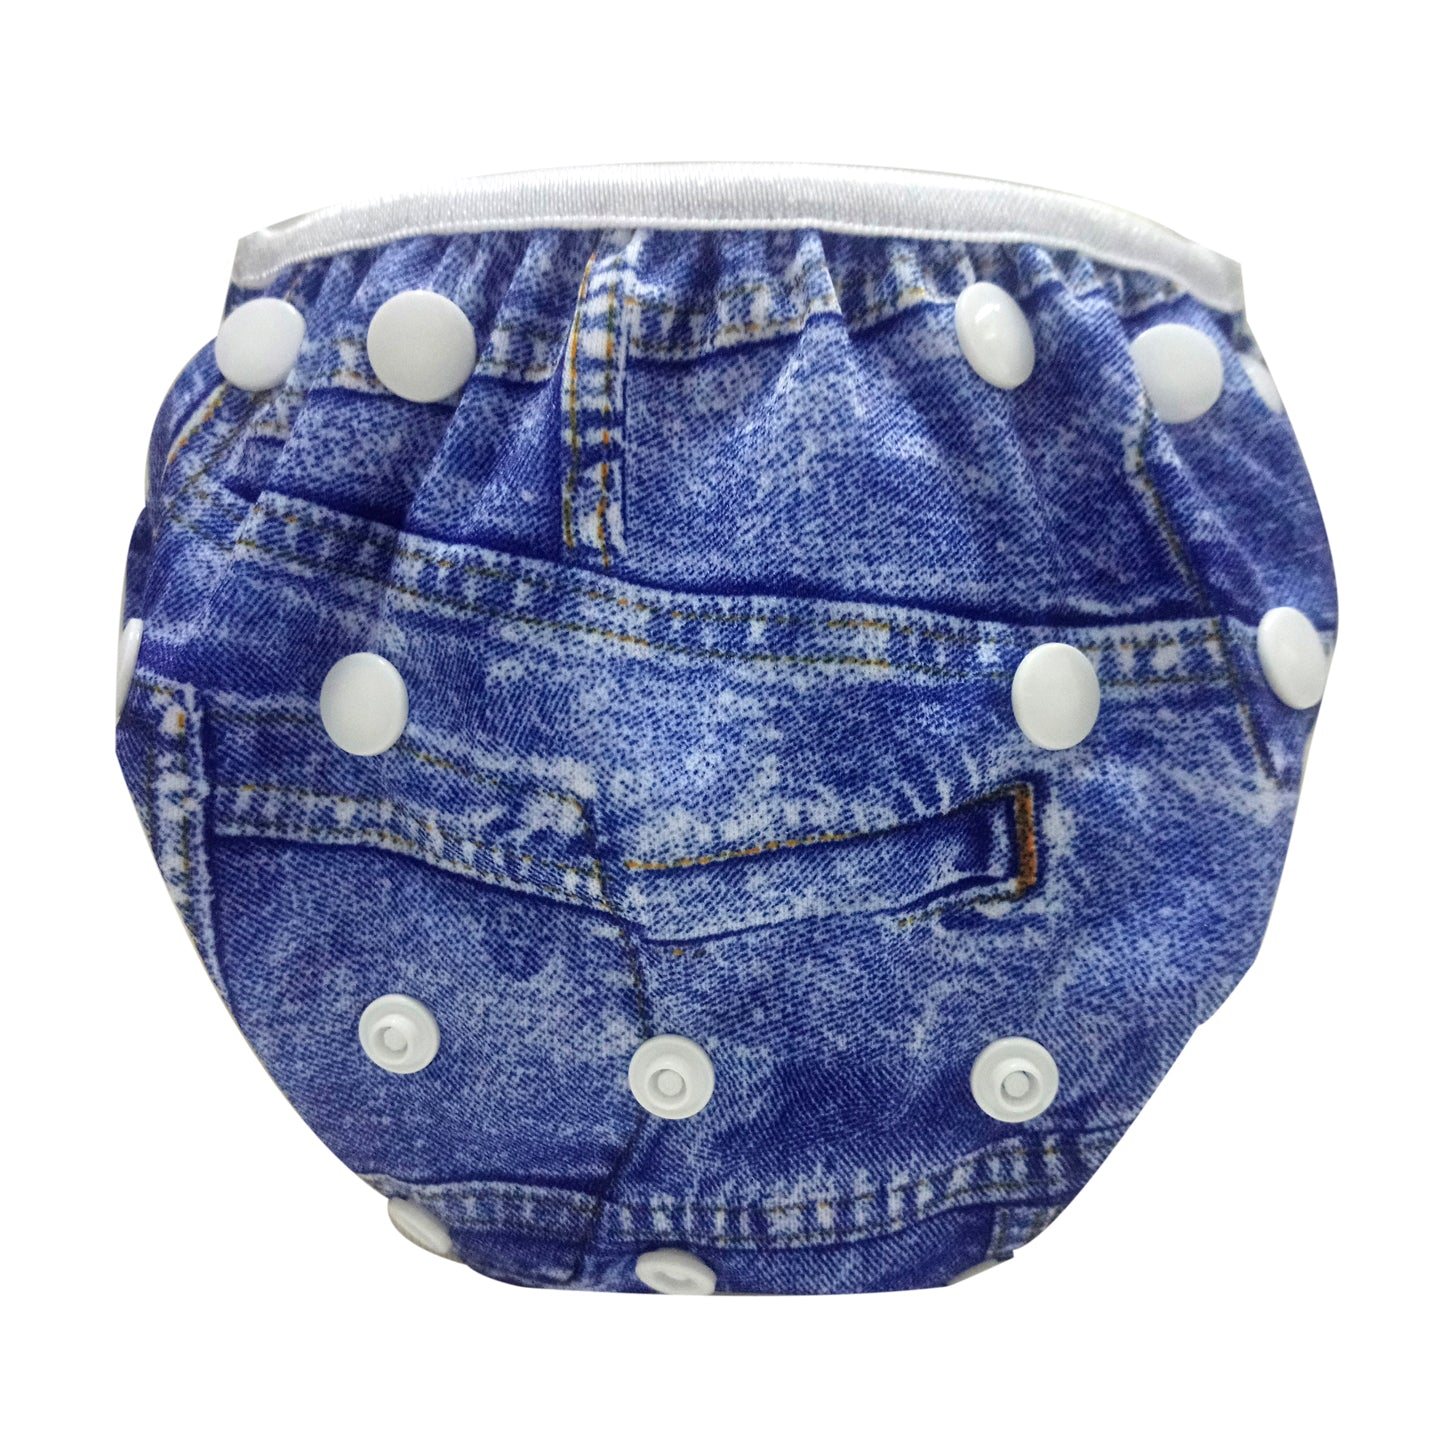 Size Adjustable Swim Diaper - Jeans (Buy 1 Get 1 Free)